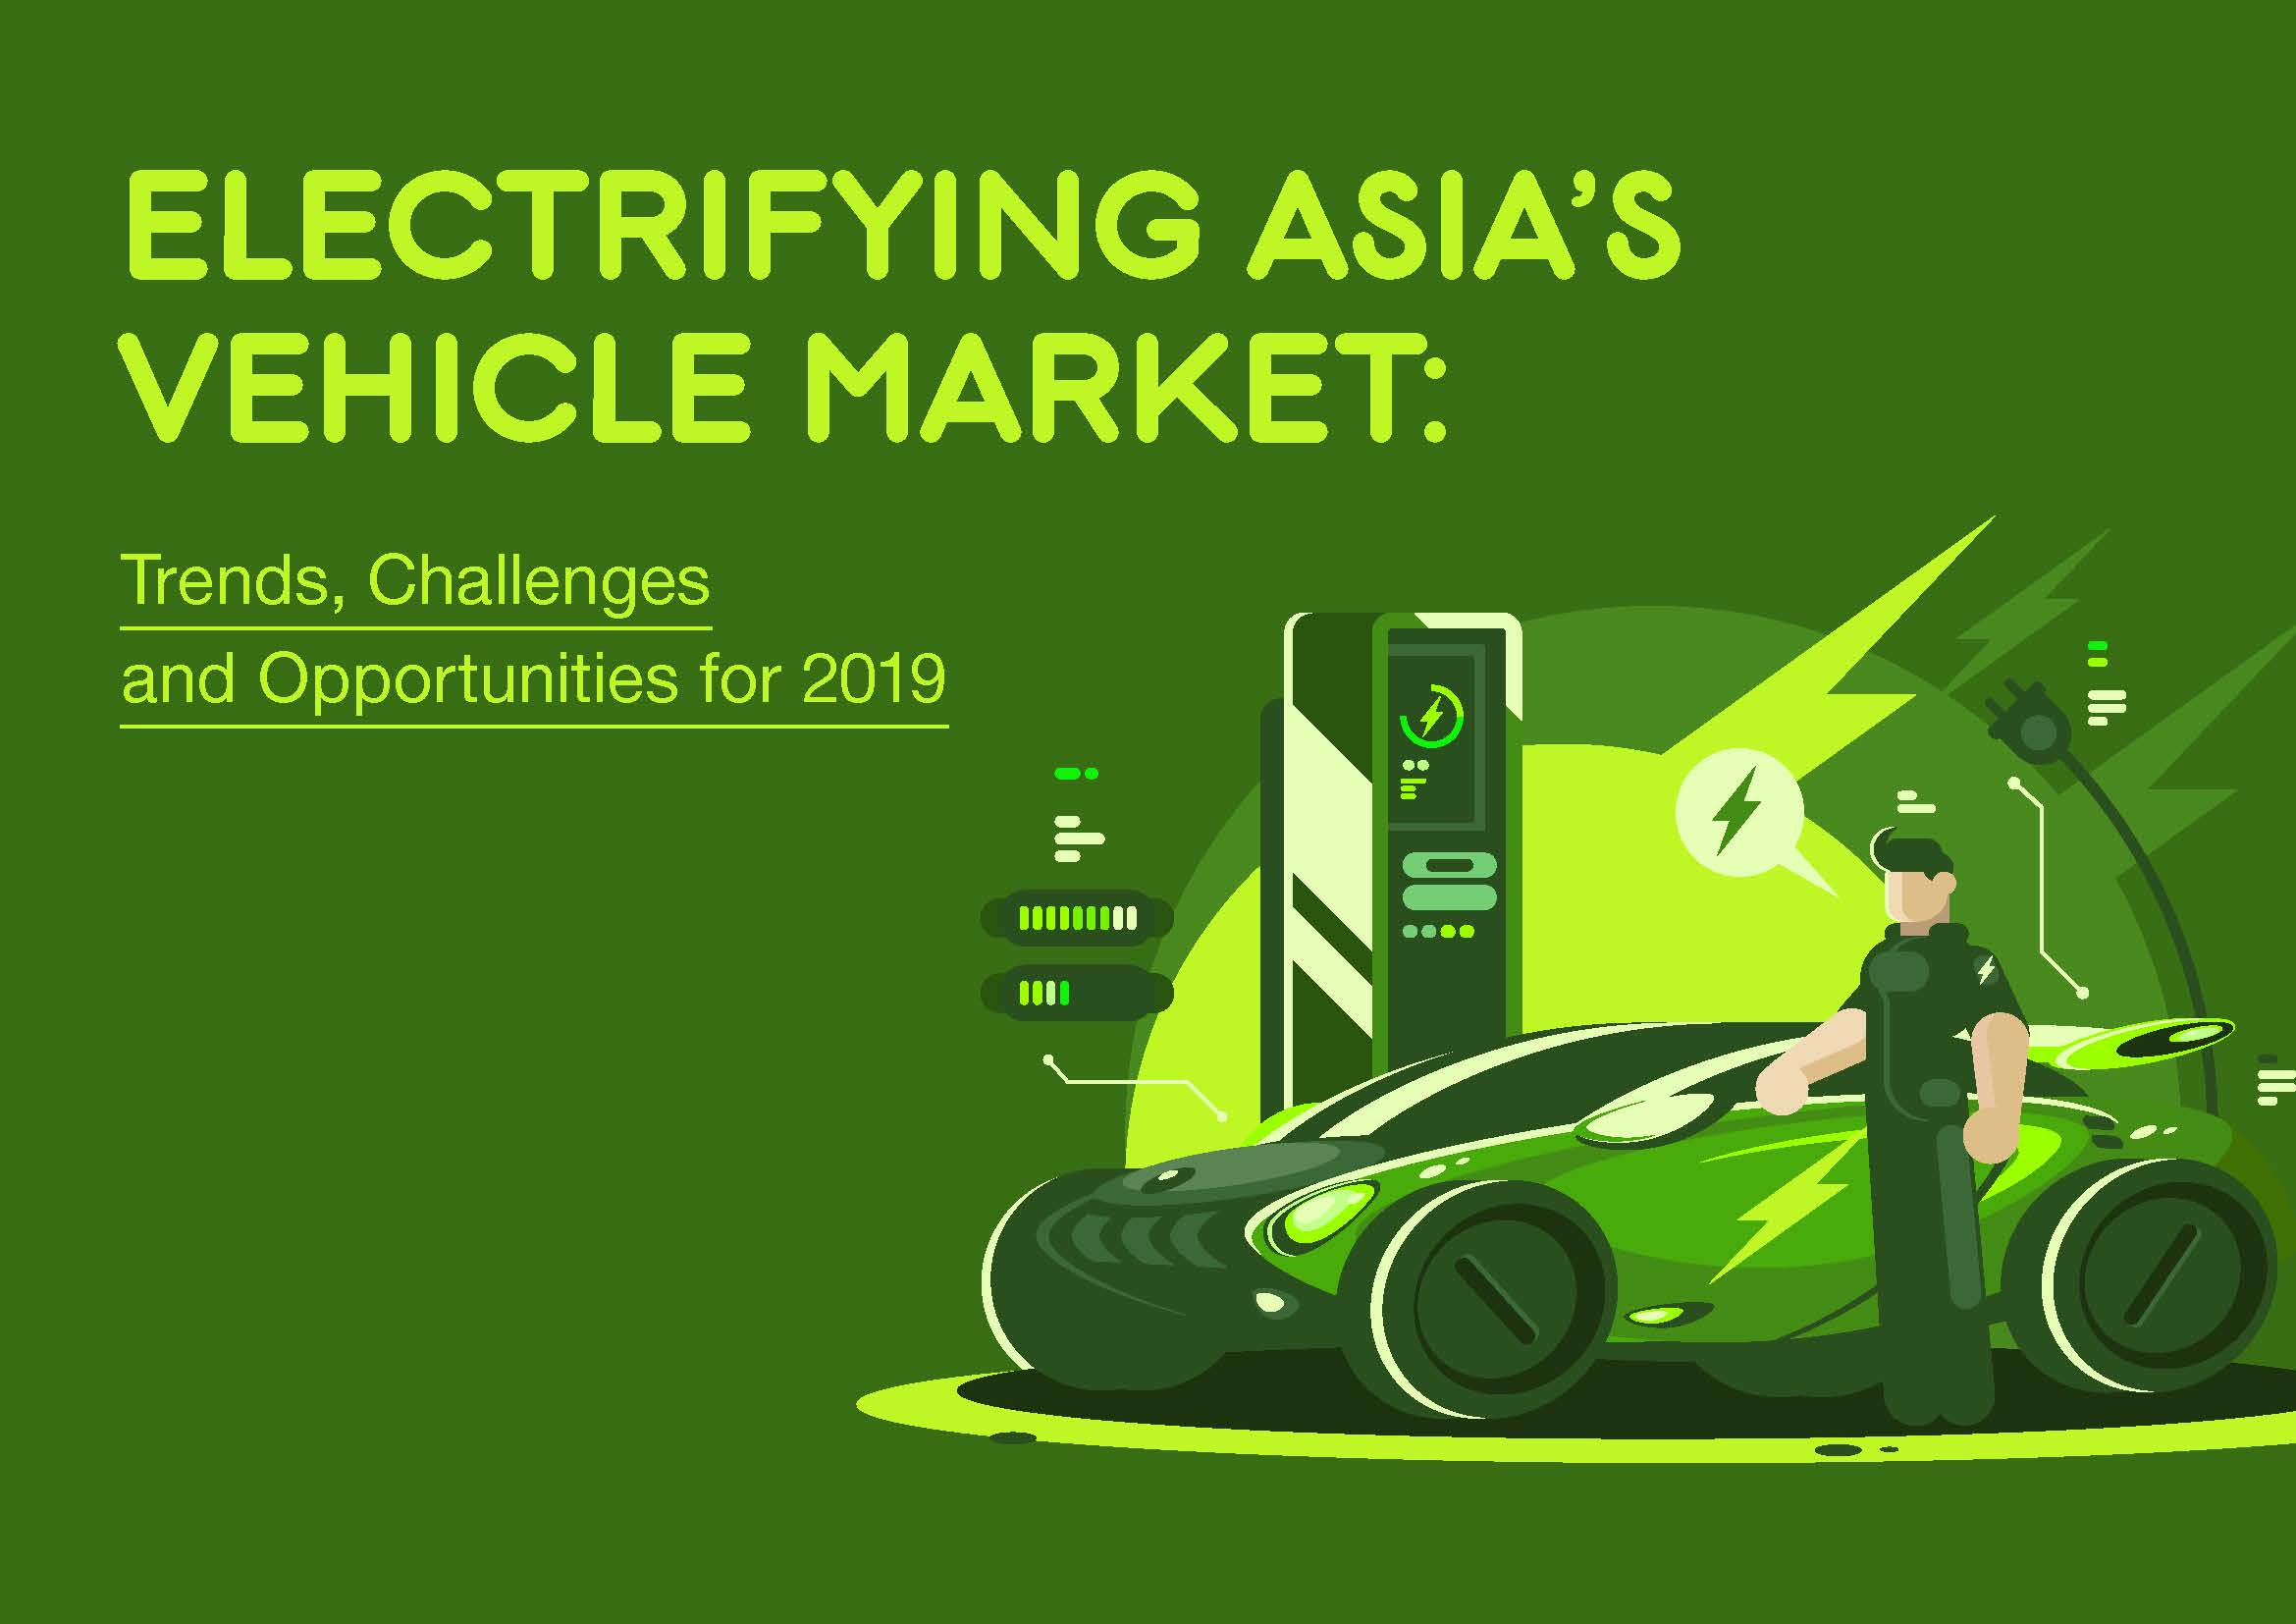 Download the Report - Electrifying Asia's Vehicle Market: Trends, Challenges and Opportunities for 2019